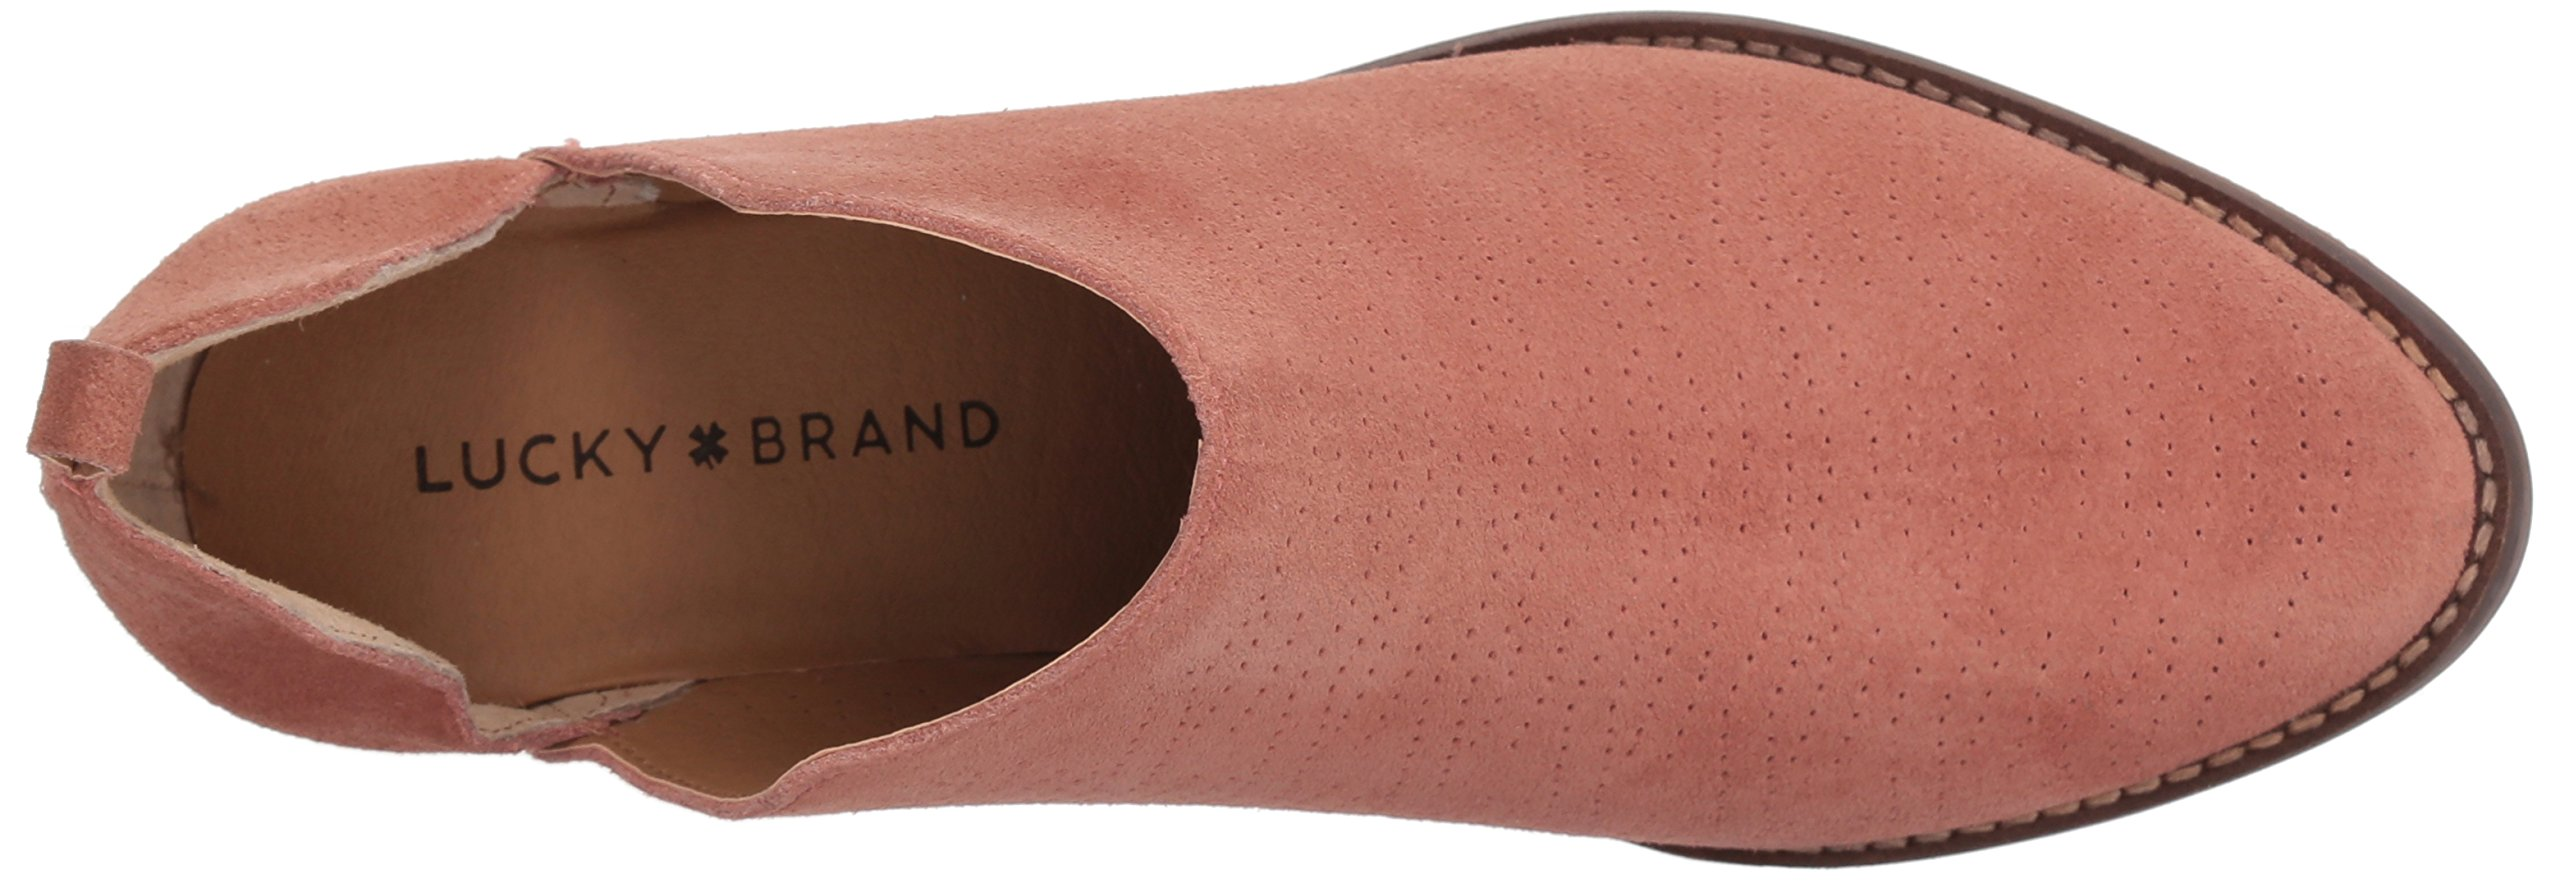 Lucky Brand Women's Fayth Ankle Boot, Canyon Rose, 8 M US by Lucky Brand (Image #7)